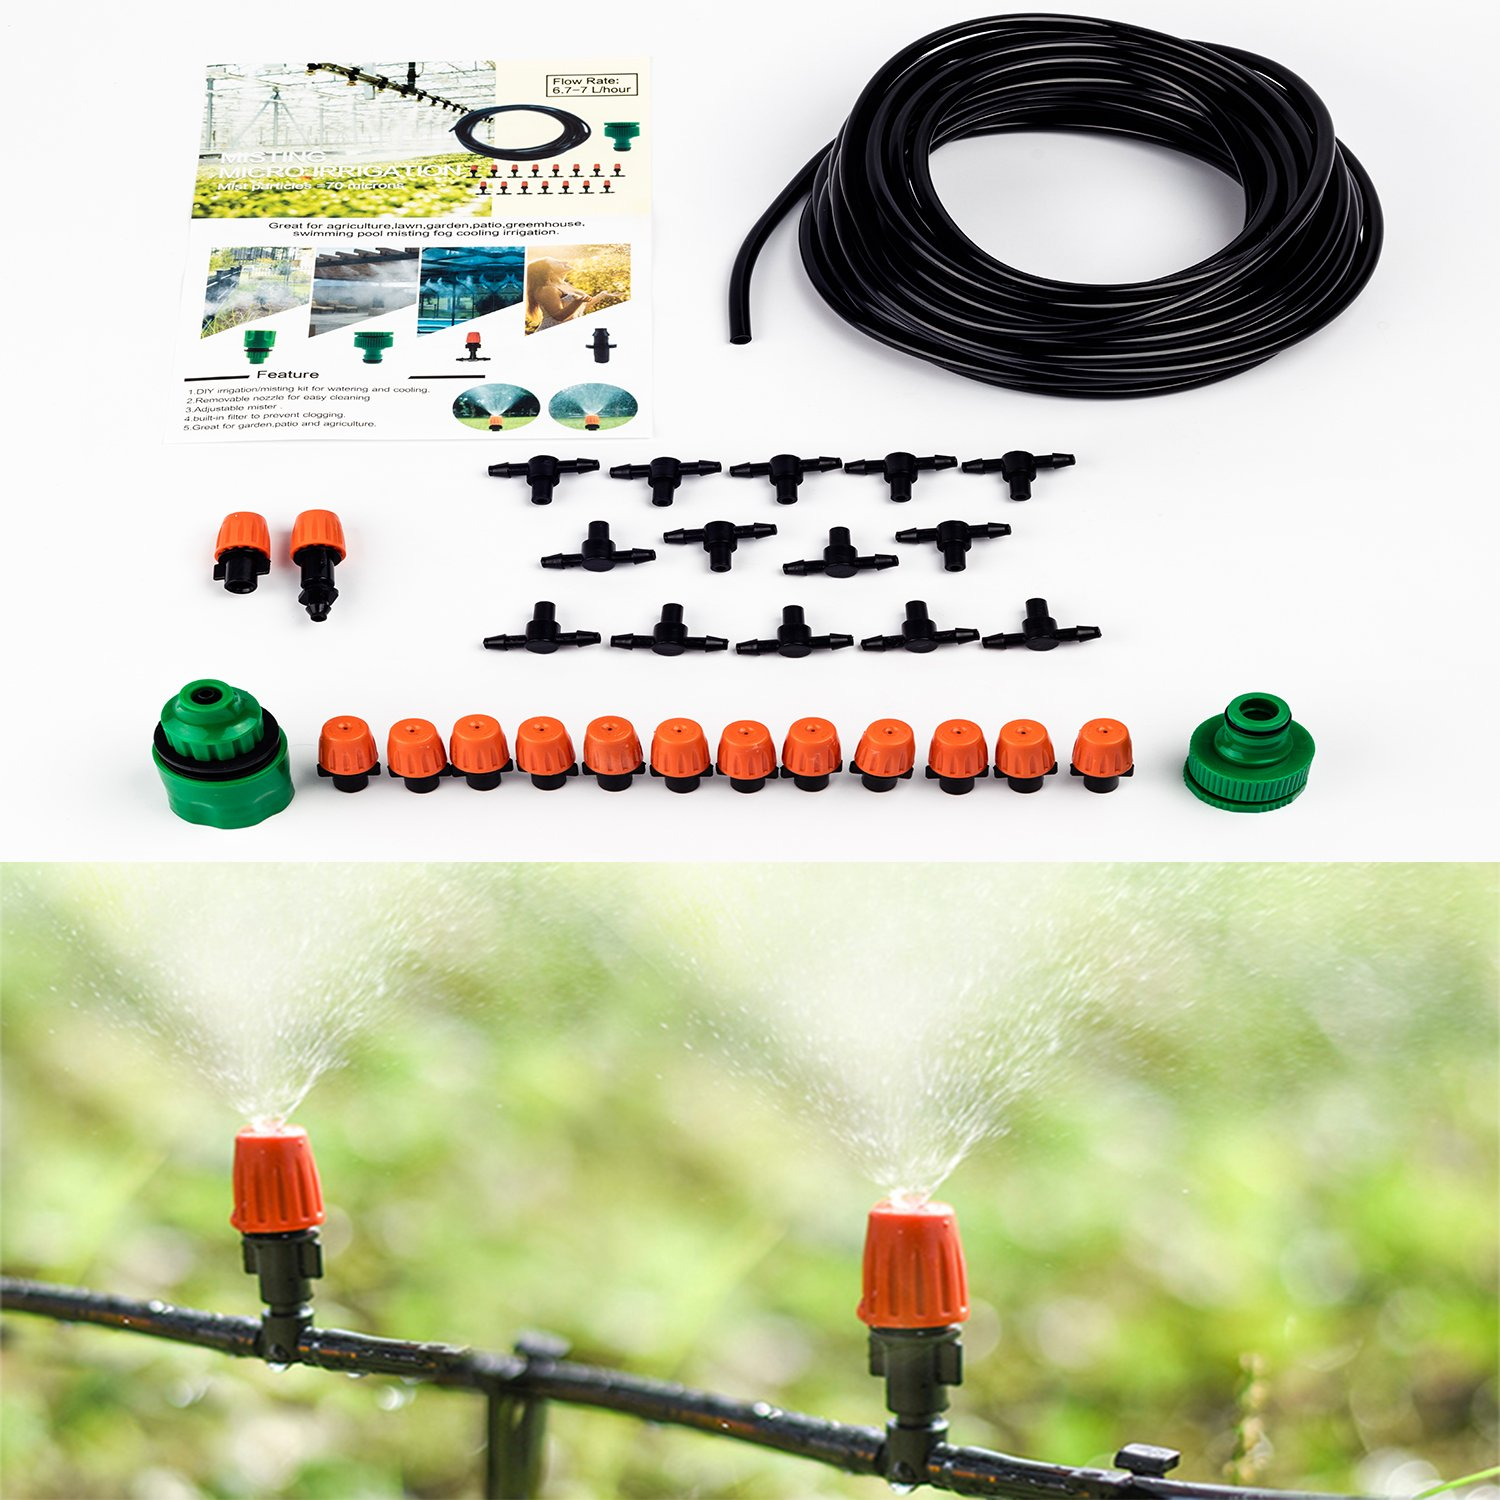 Light In Dark Improved Version Plant Irrigation Misting Automatic Garden Controlling System Circuit Diagram Patio Free Installation Book Included Outdoor